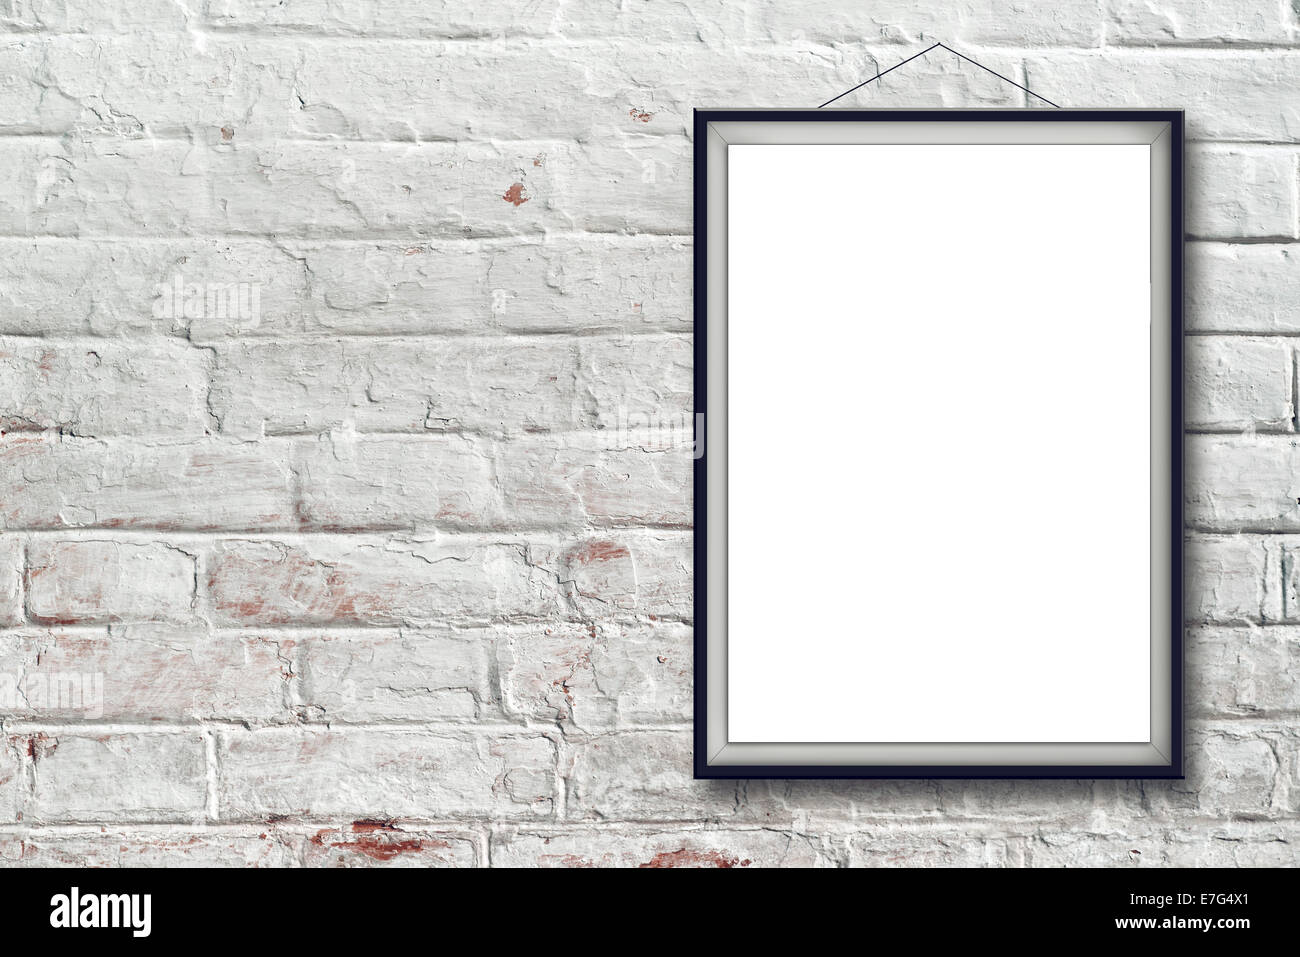 Blank Vertical Painting Poster In Black Frame Hanging On White Brick